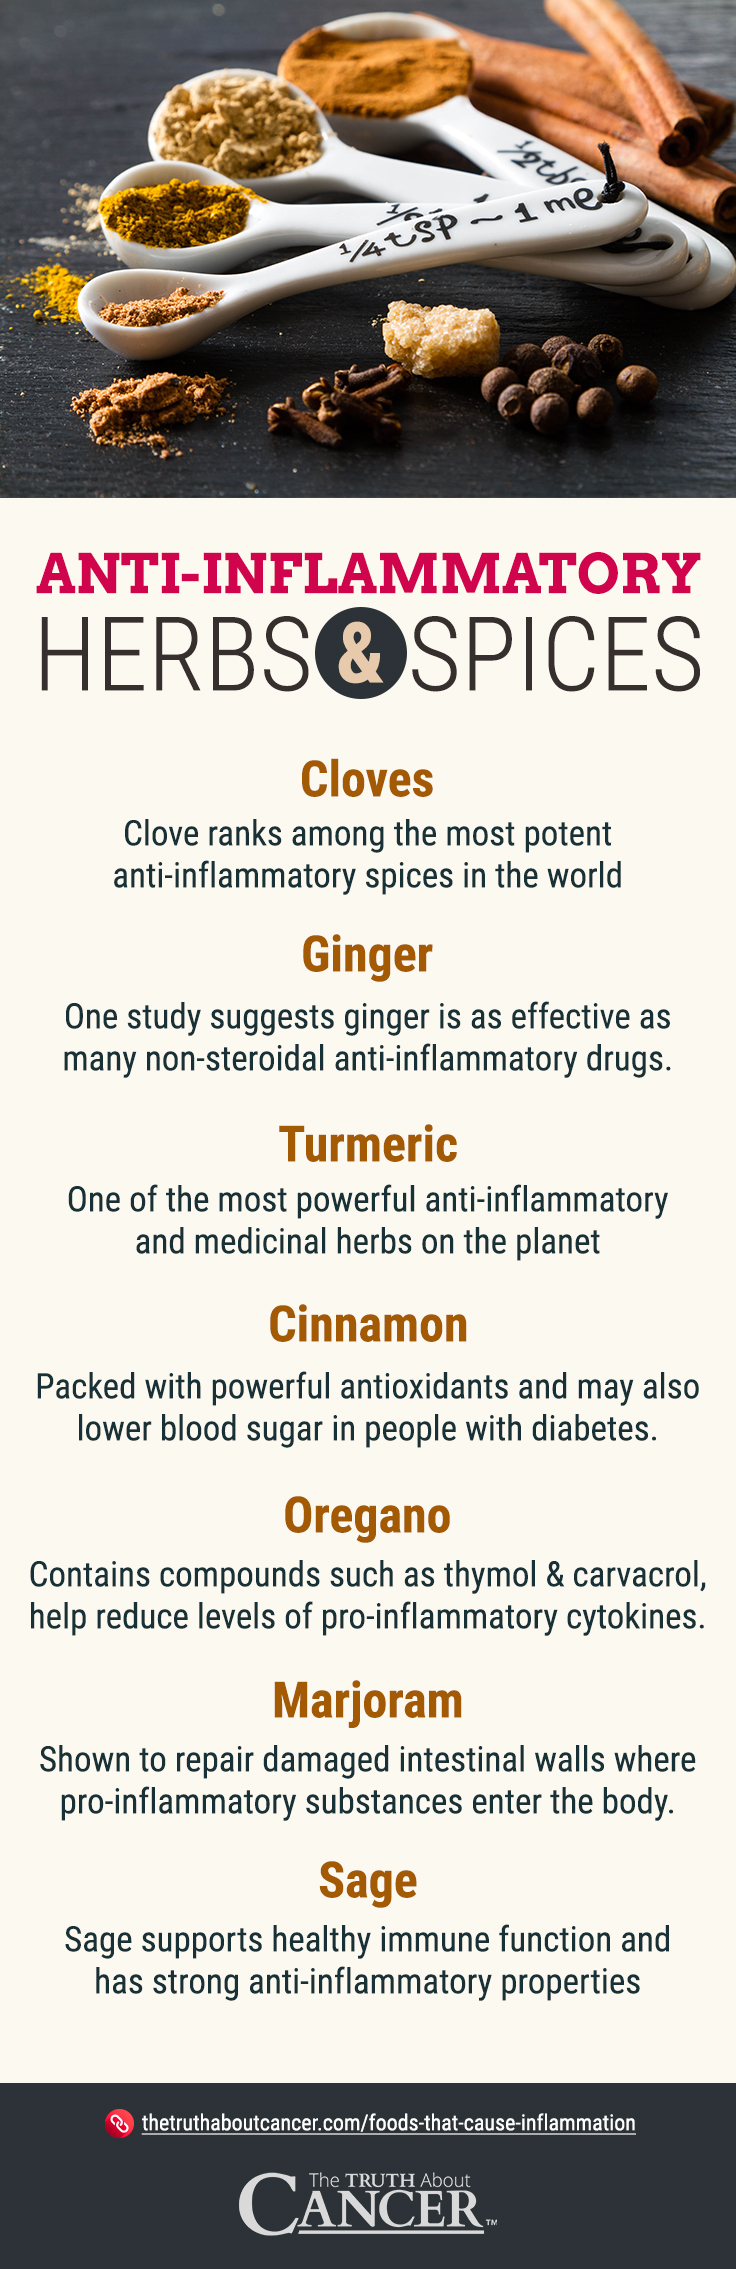 Anti-Inflammatory Spices - Infographic